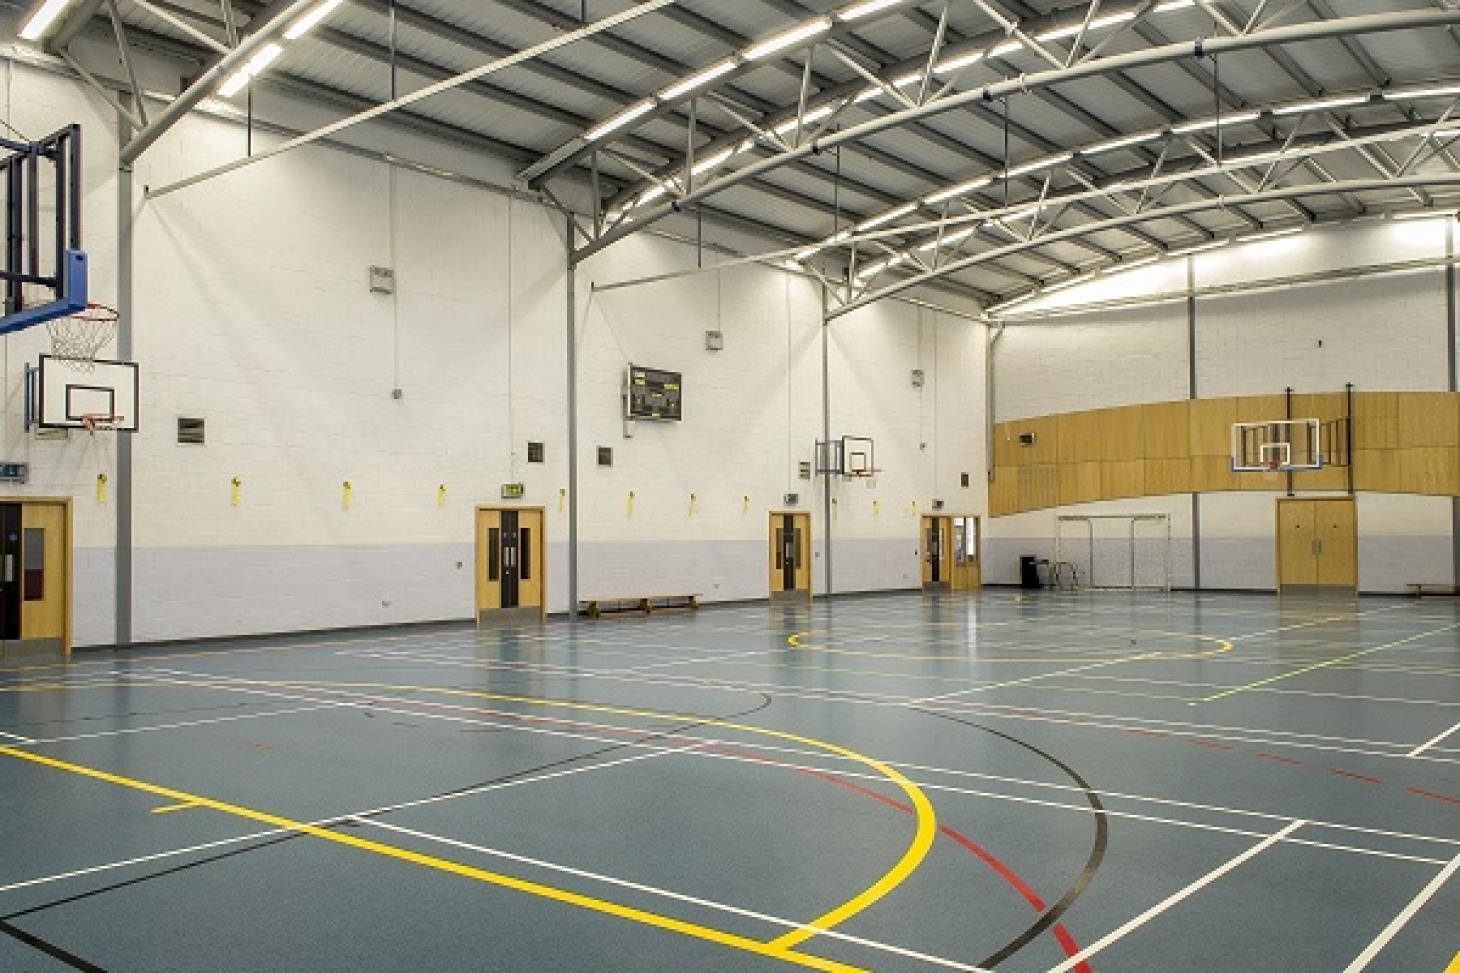 Corduff Sports Centre Indoor basketball court